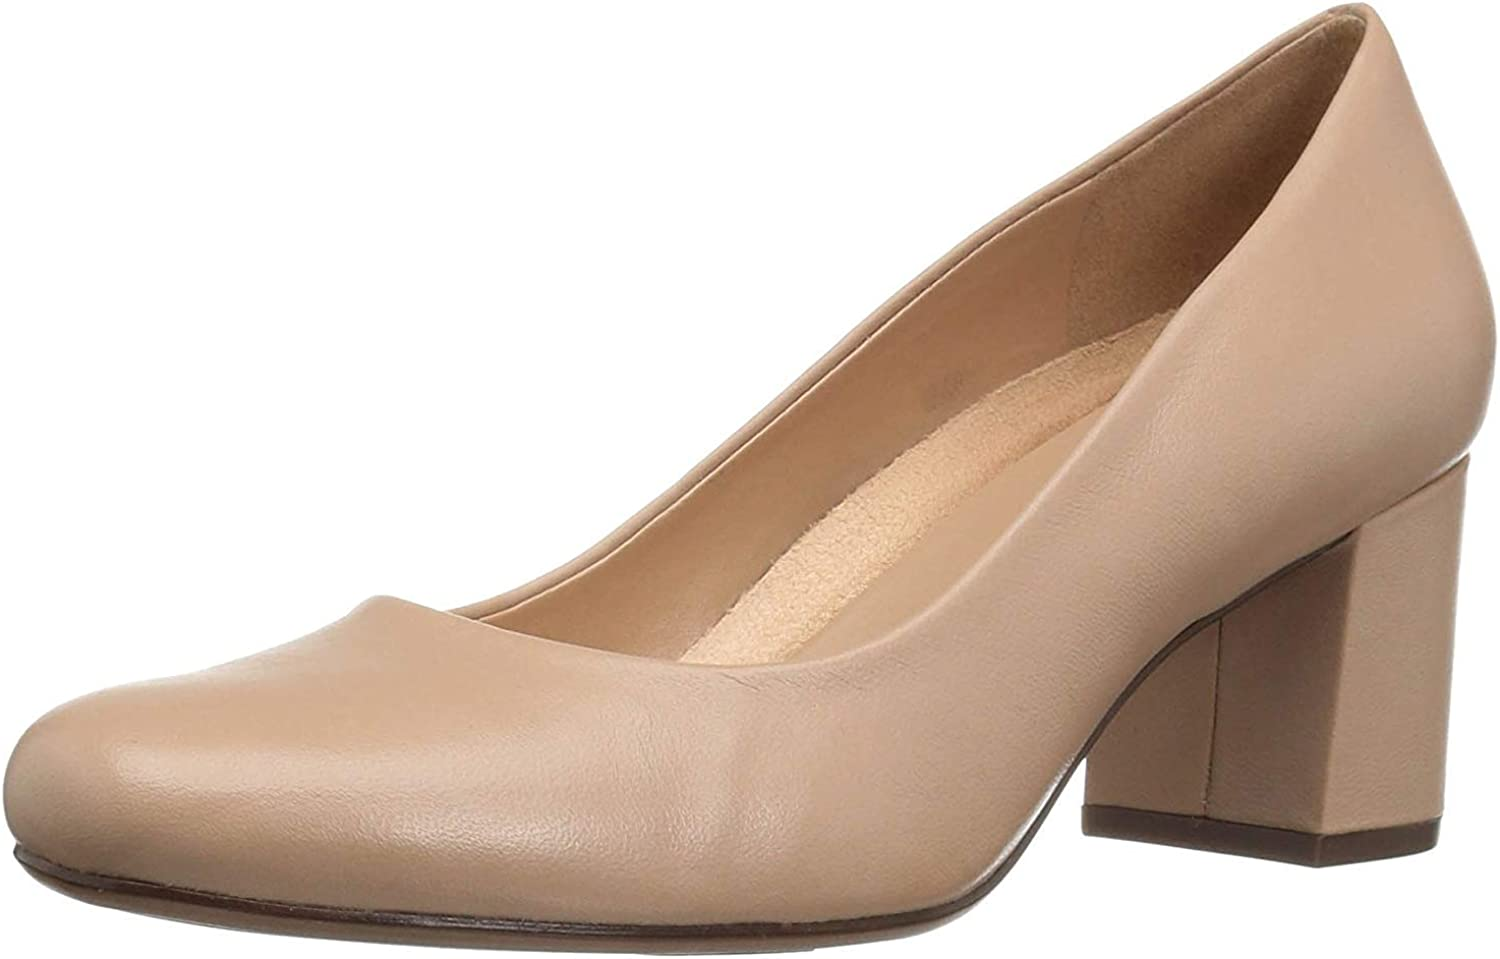 Naturalizer Women's Pump Whitney Miami Ranking integrated 1st place Mall